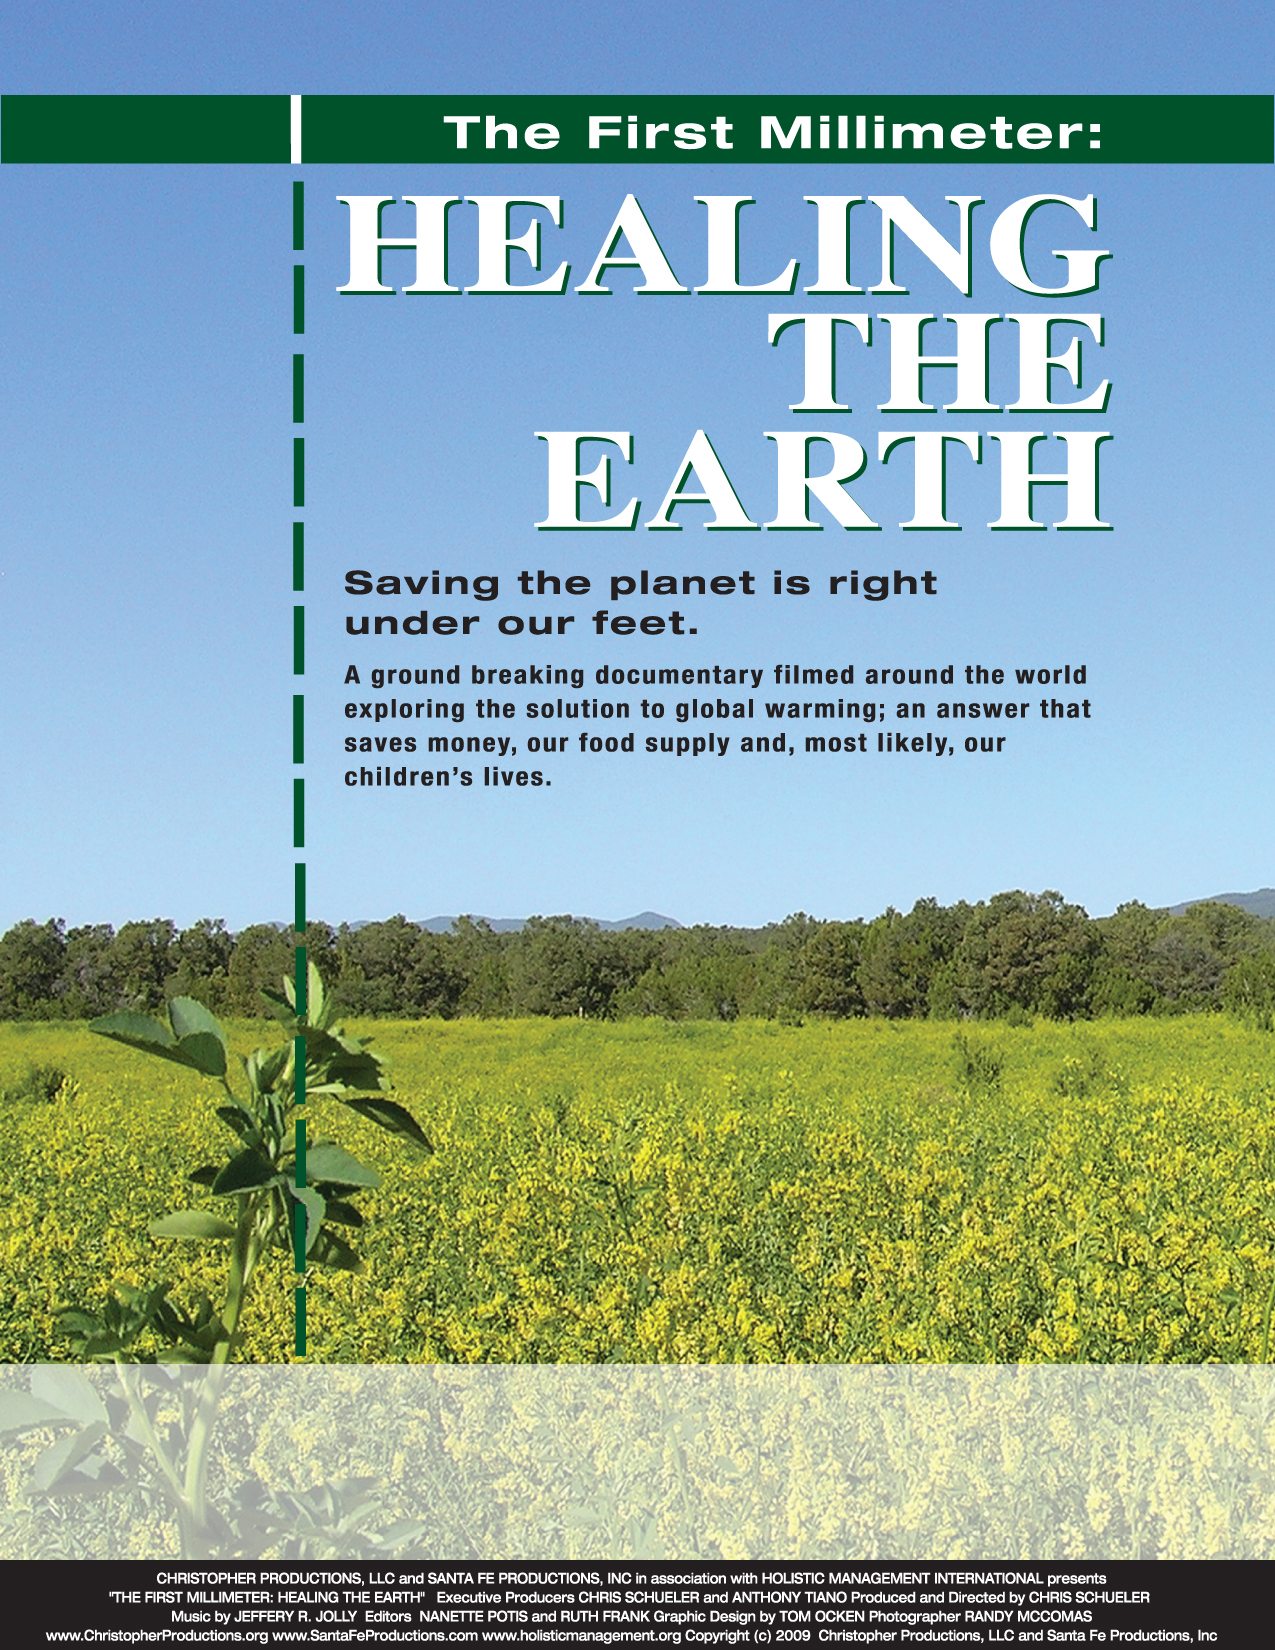 Healing Earth Tarot A Journey In Self Discovery By: The First Millimeter: Healing The Earth, Free Film In